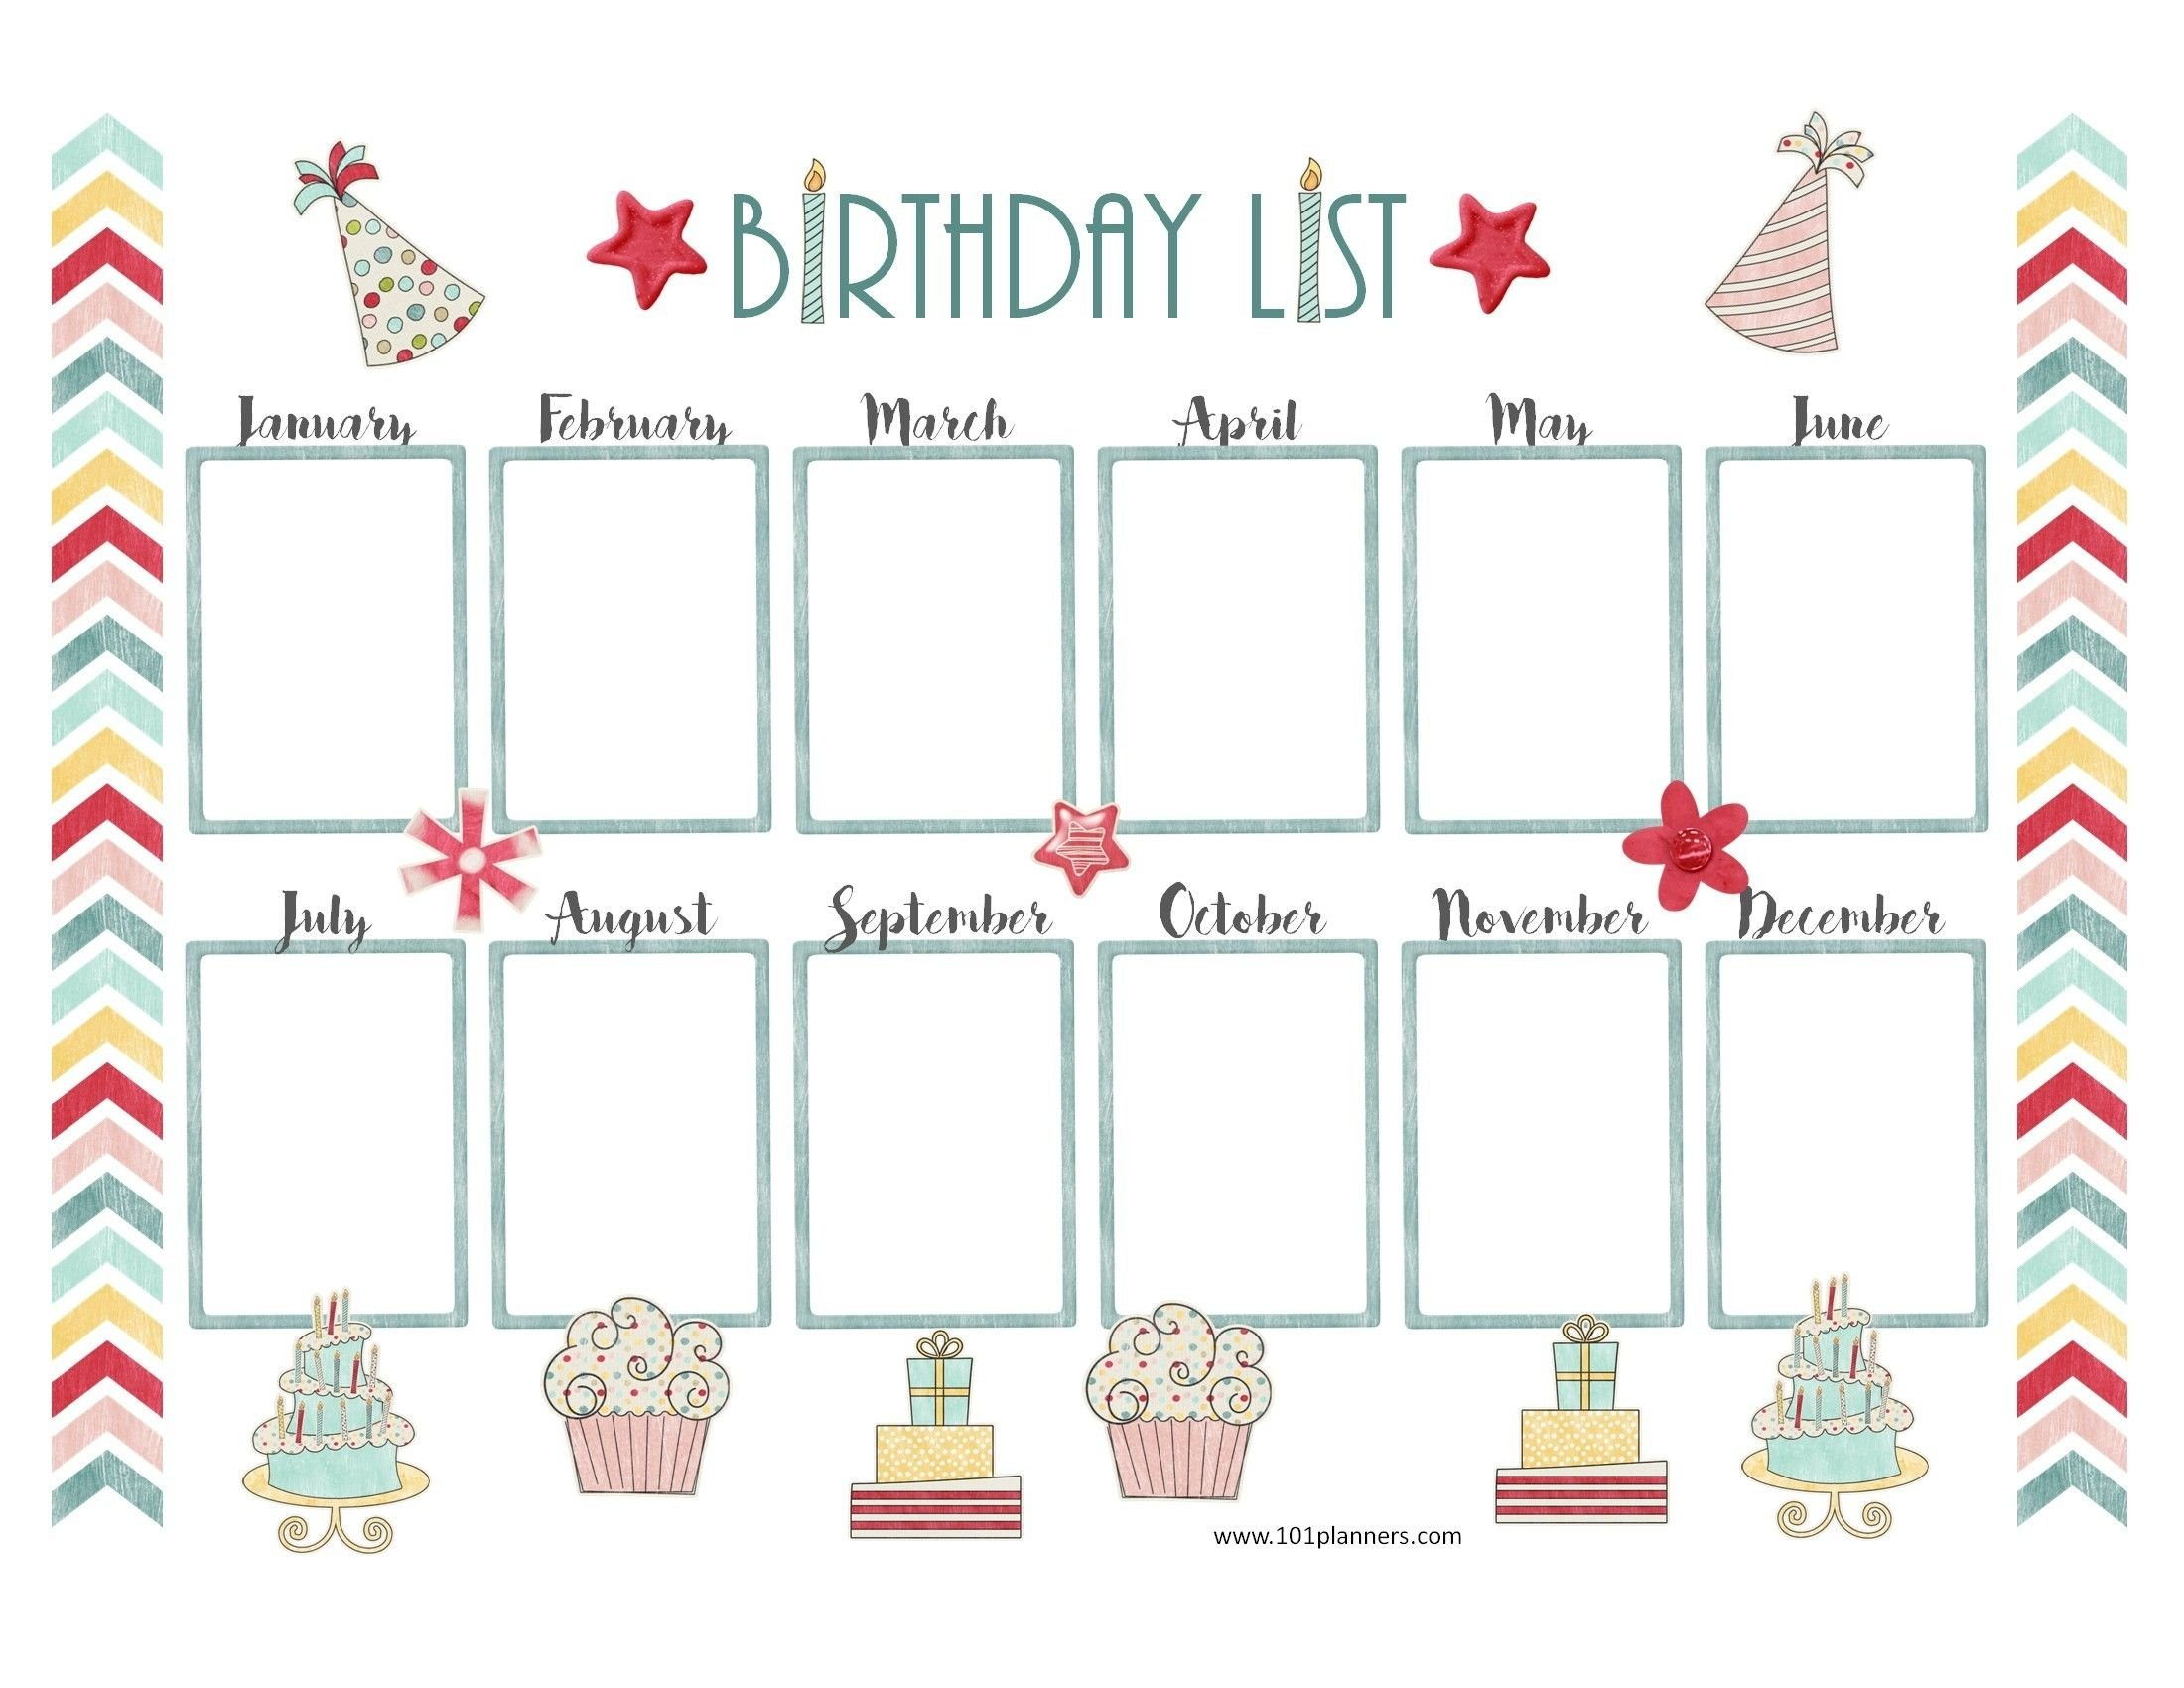 Birthday Calendar Template Free Download Birthday Calendar Free Birthday Calendar For The Workplace